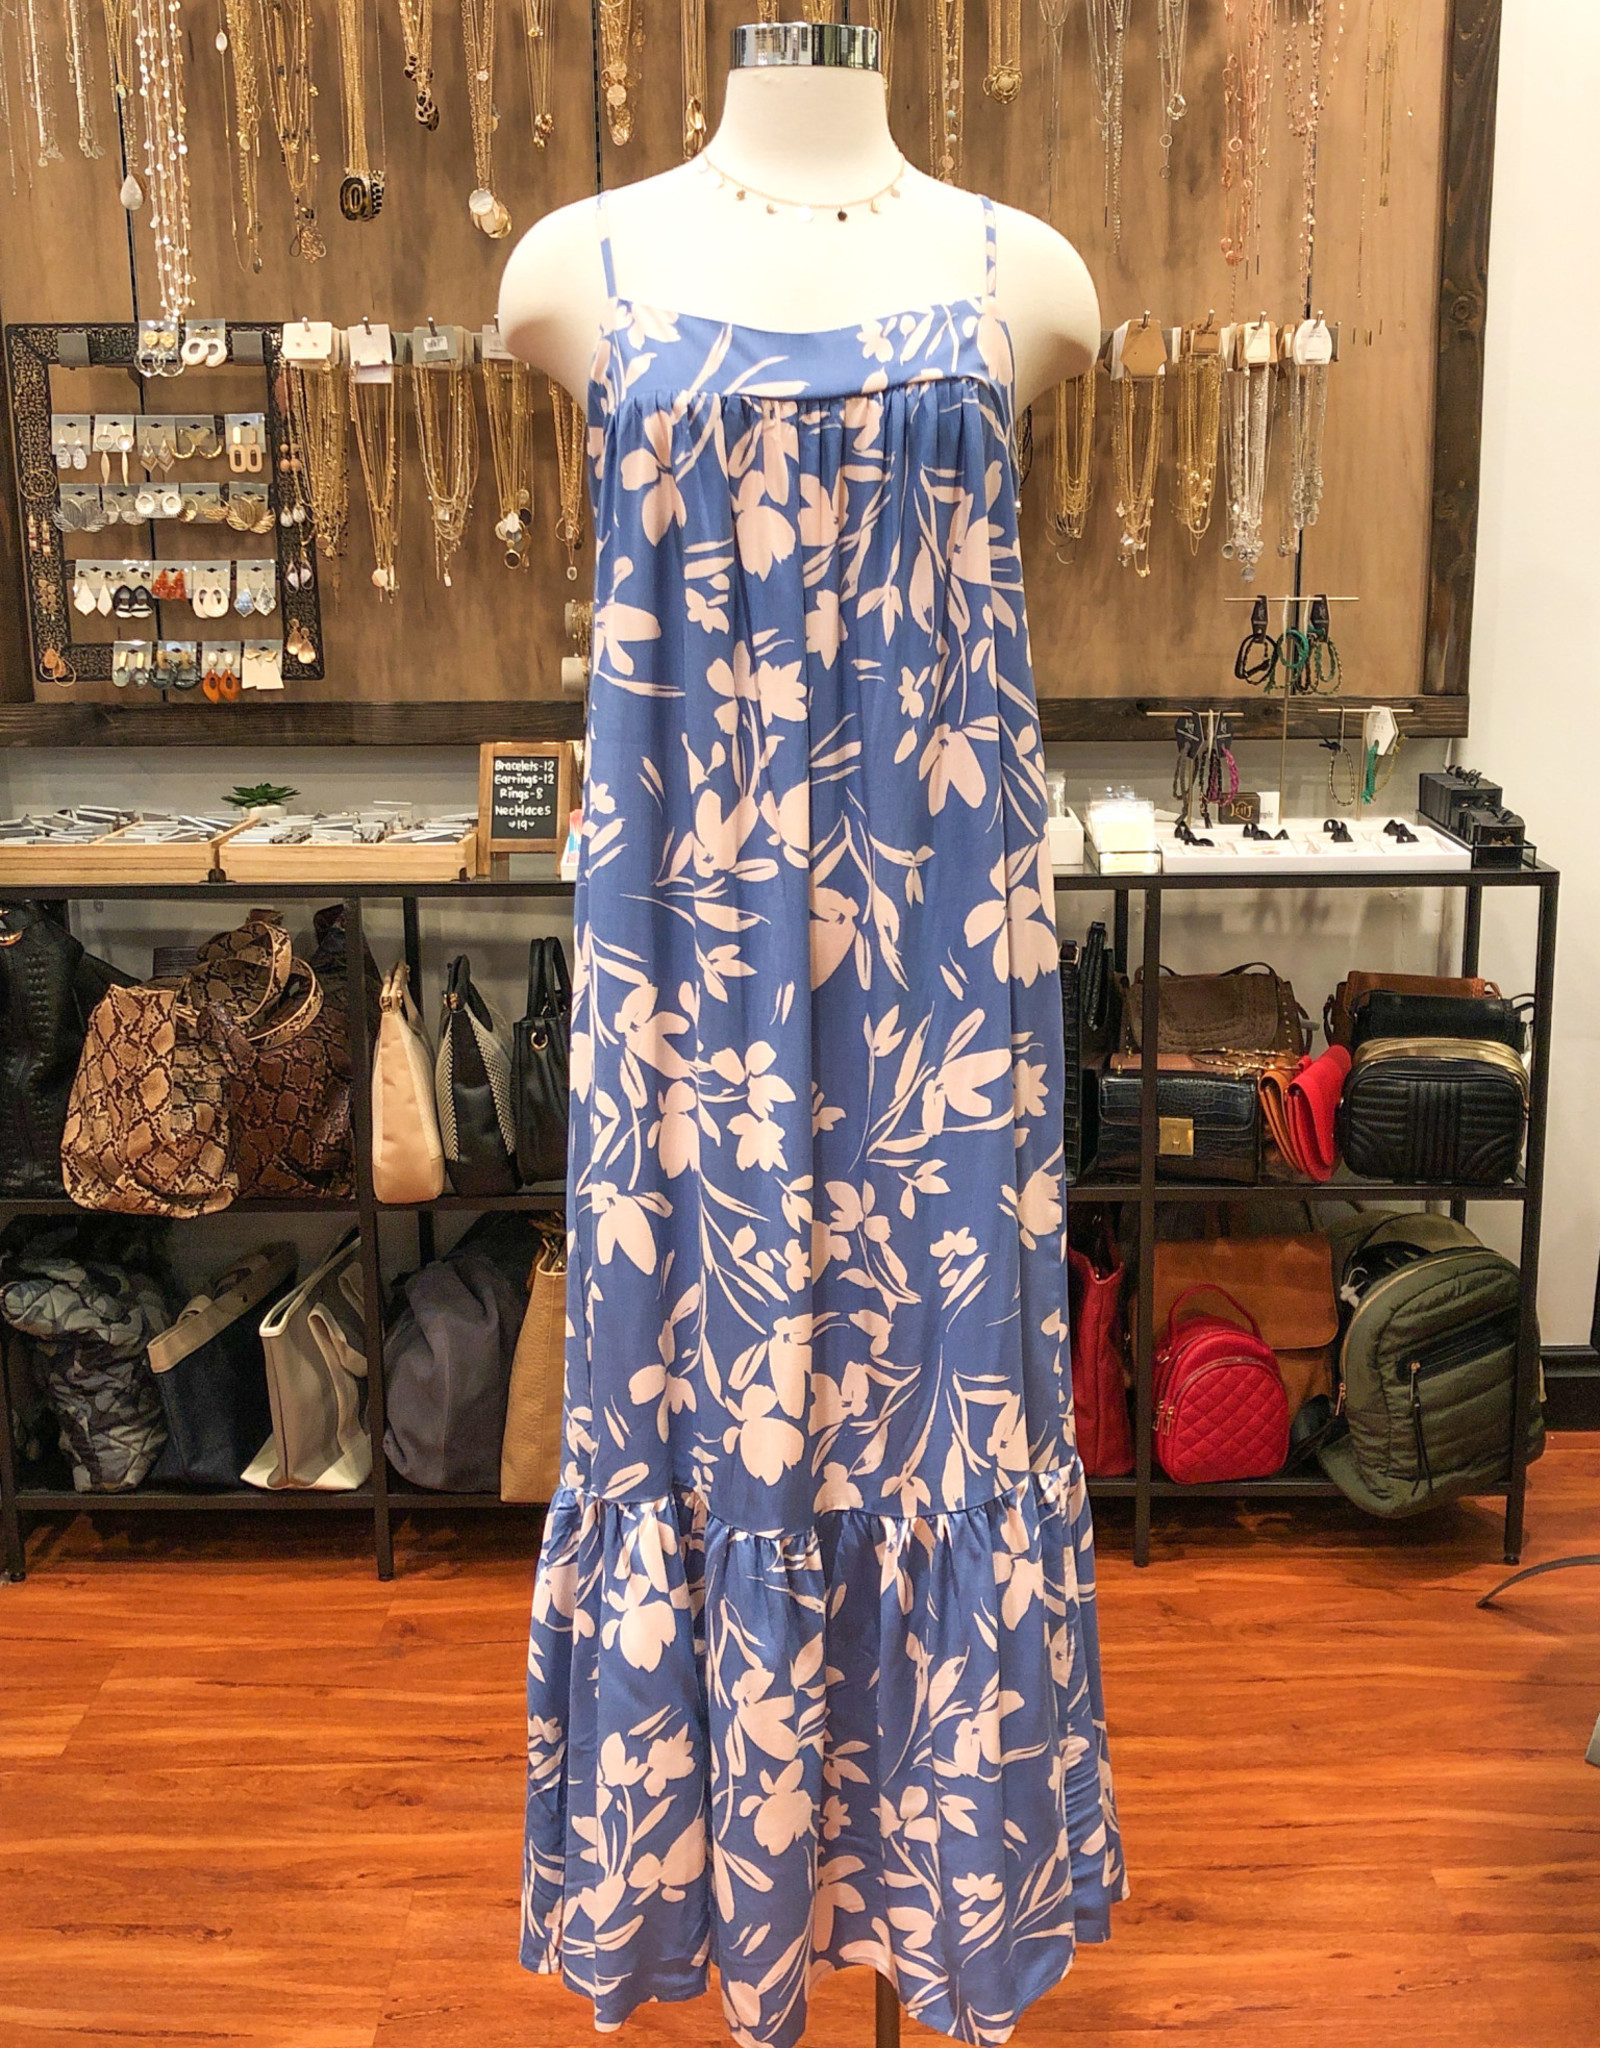 DR96192-I FLORAL TIERED MAXI DRESS